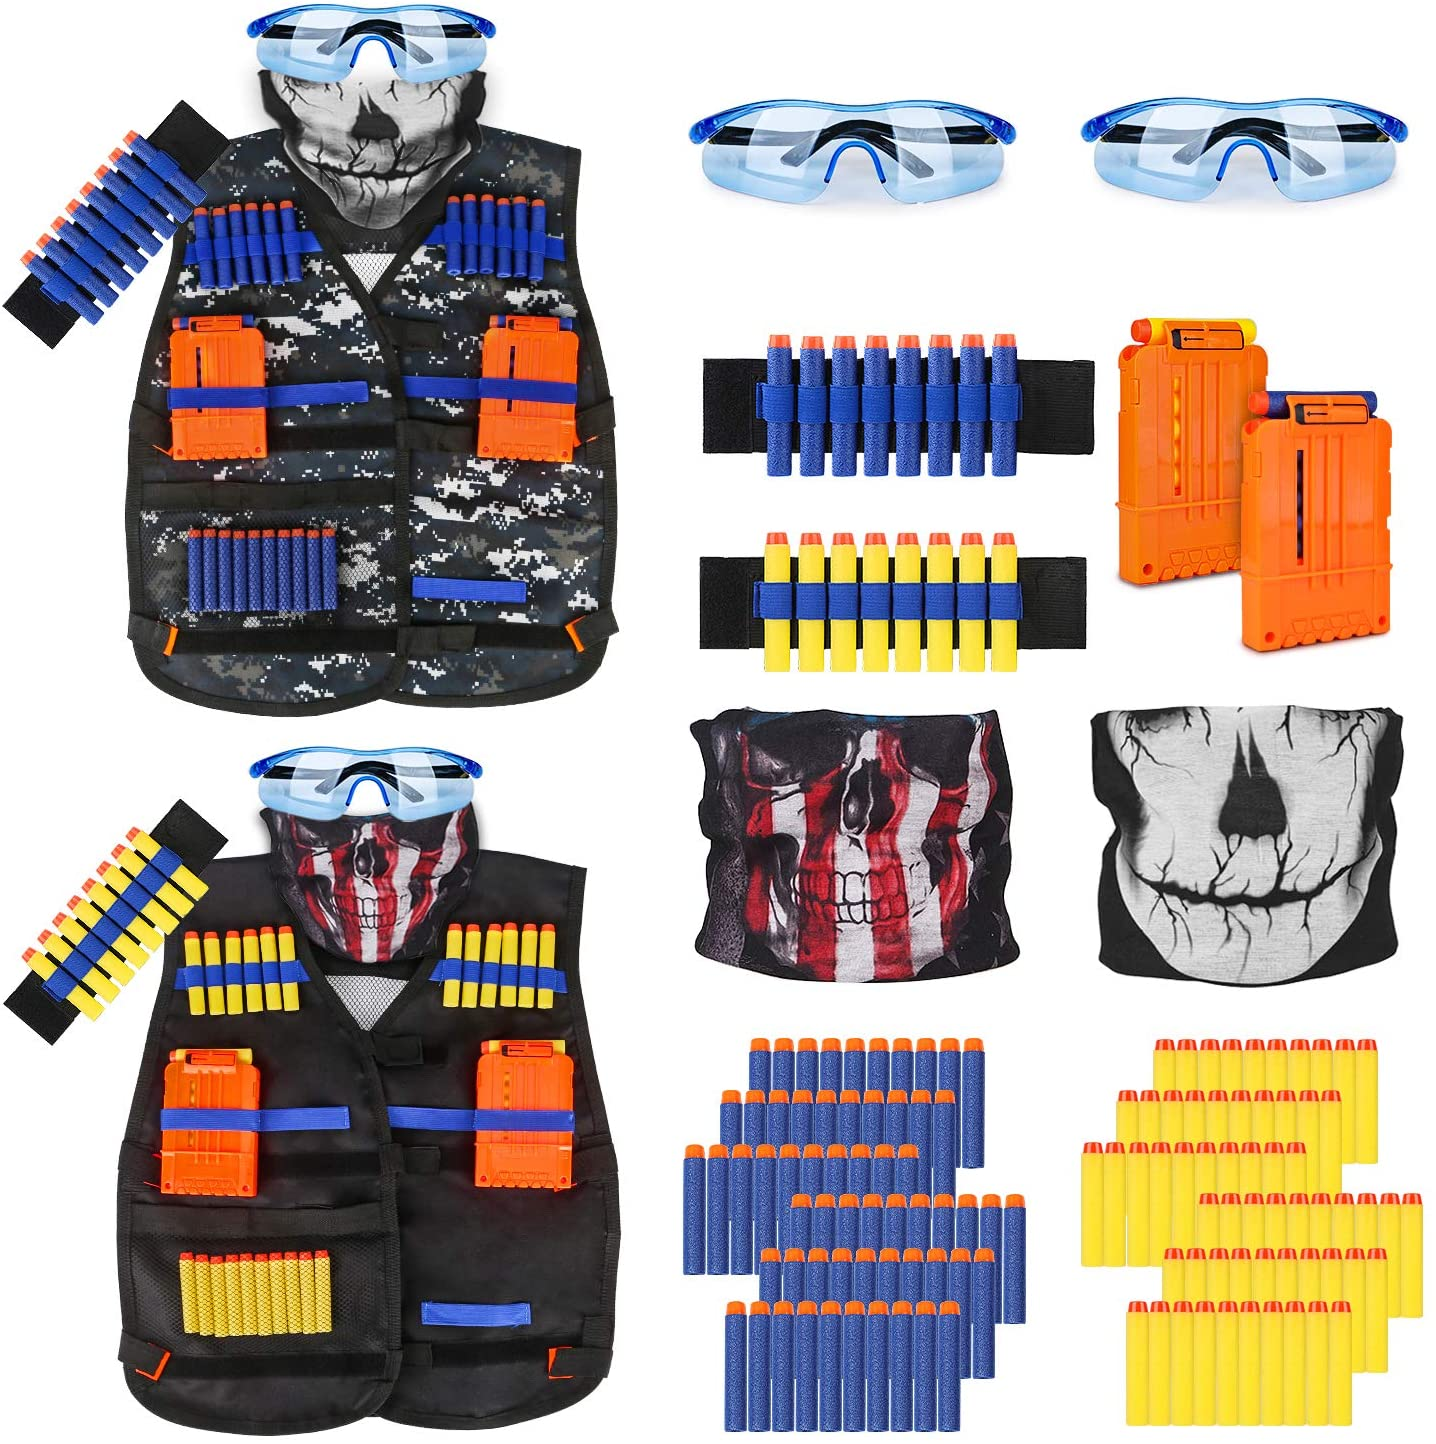 gifts-for-6-year-old-boys-nerf-tactical-gear